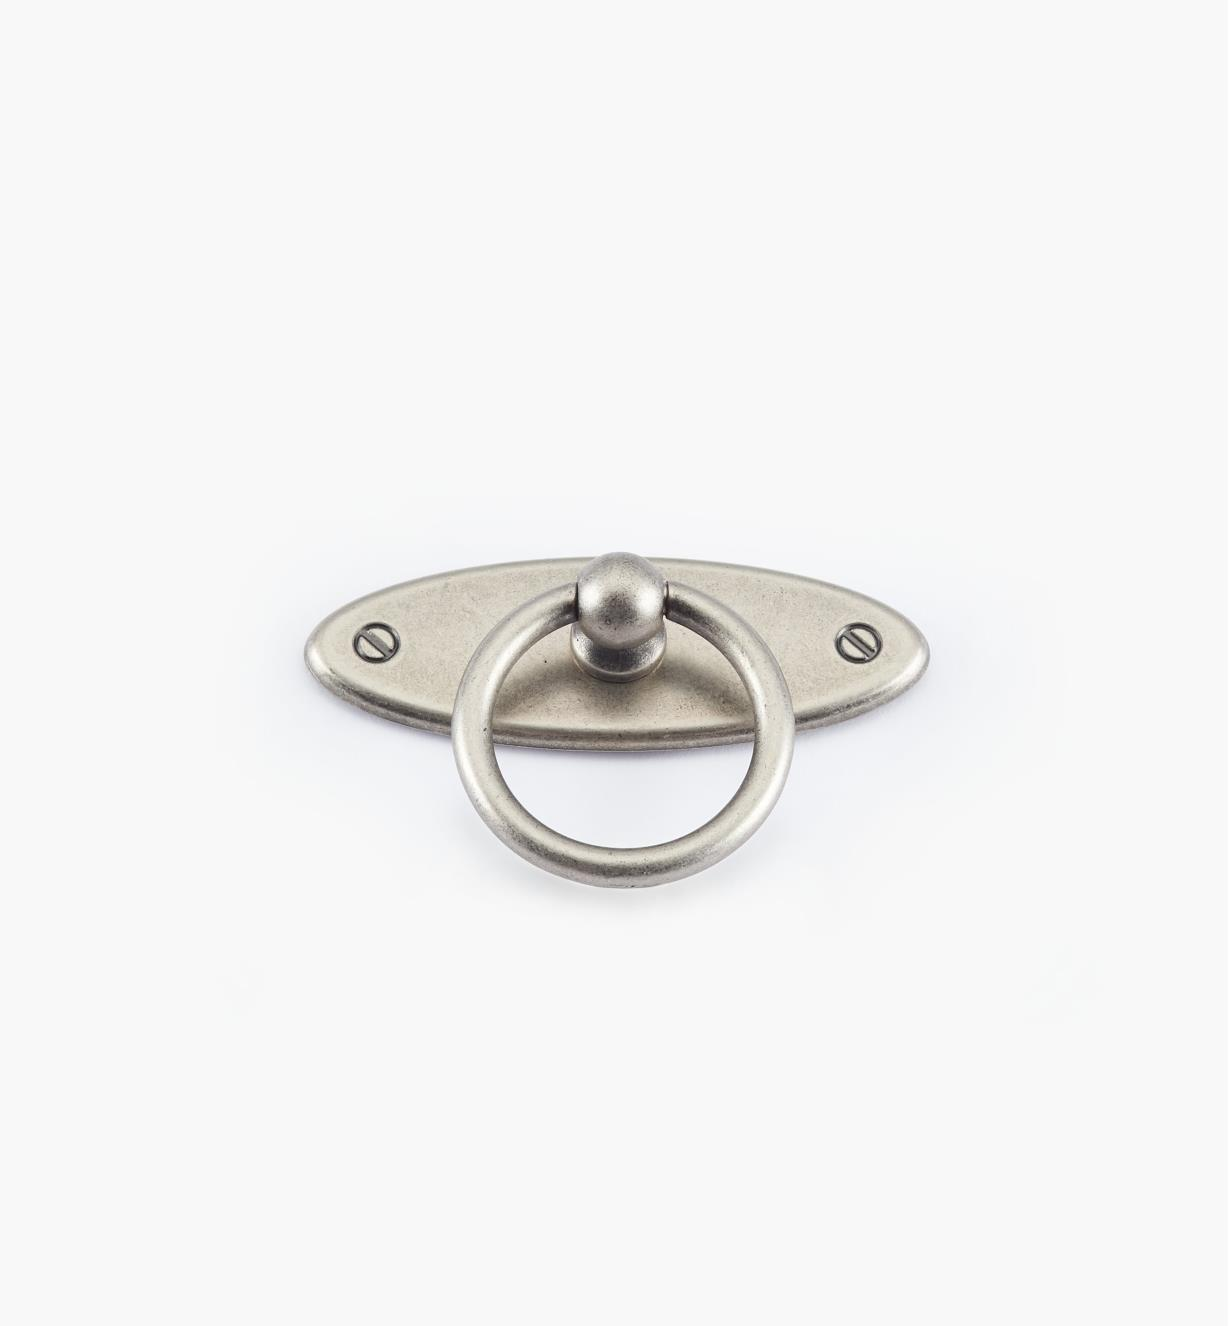 01X3066 - 65mm x 35mm Pewter Ring Pull/Escutcheon